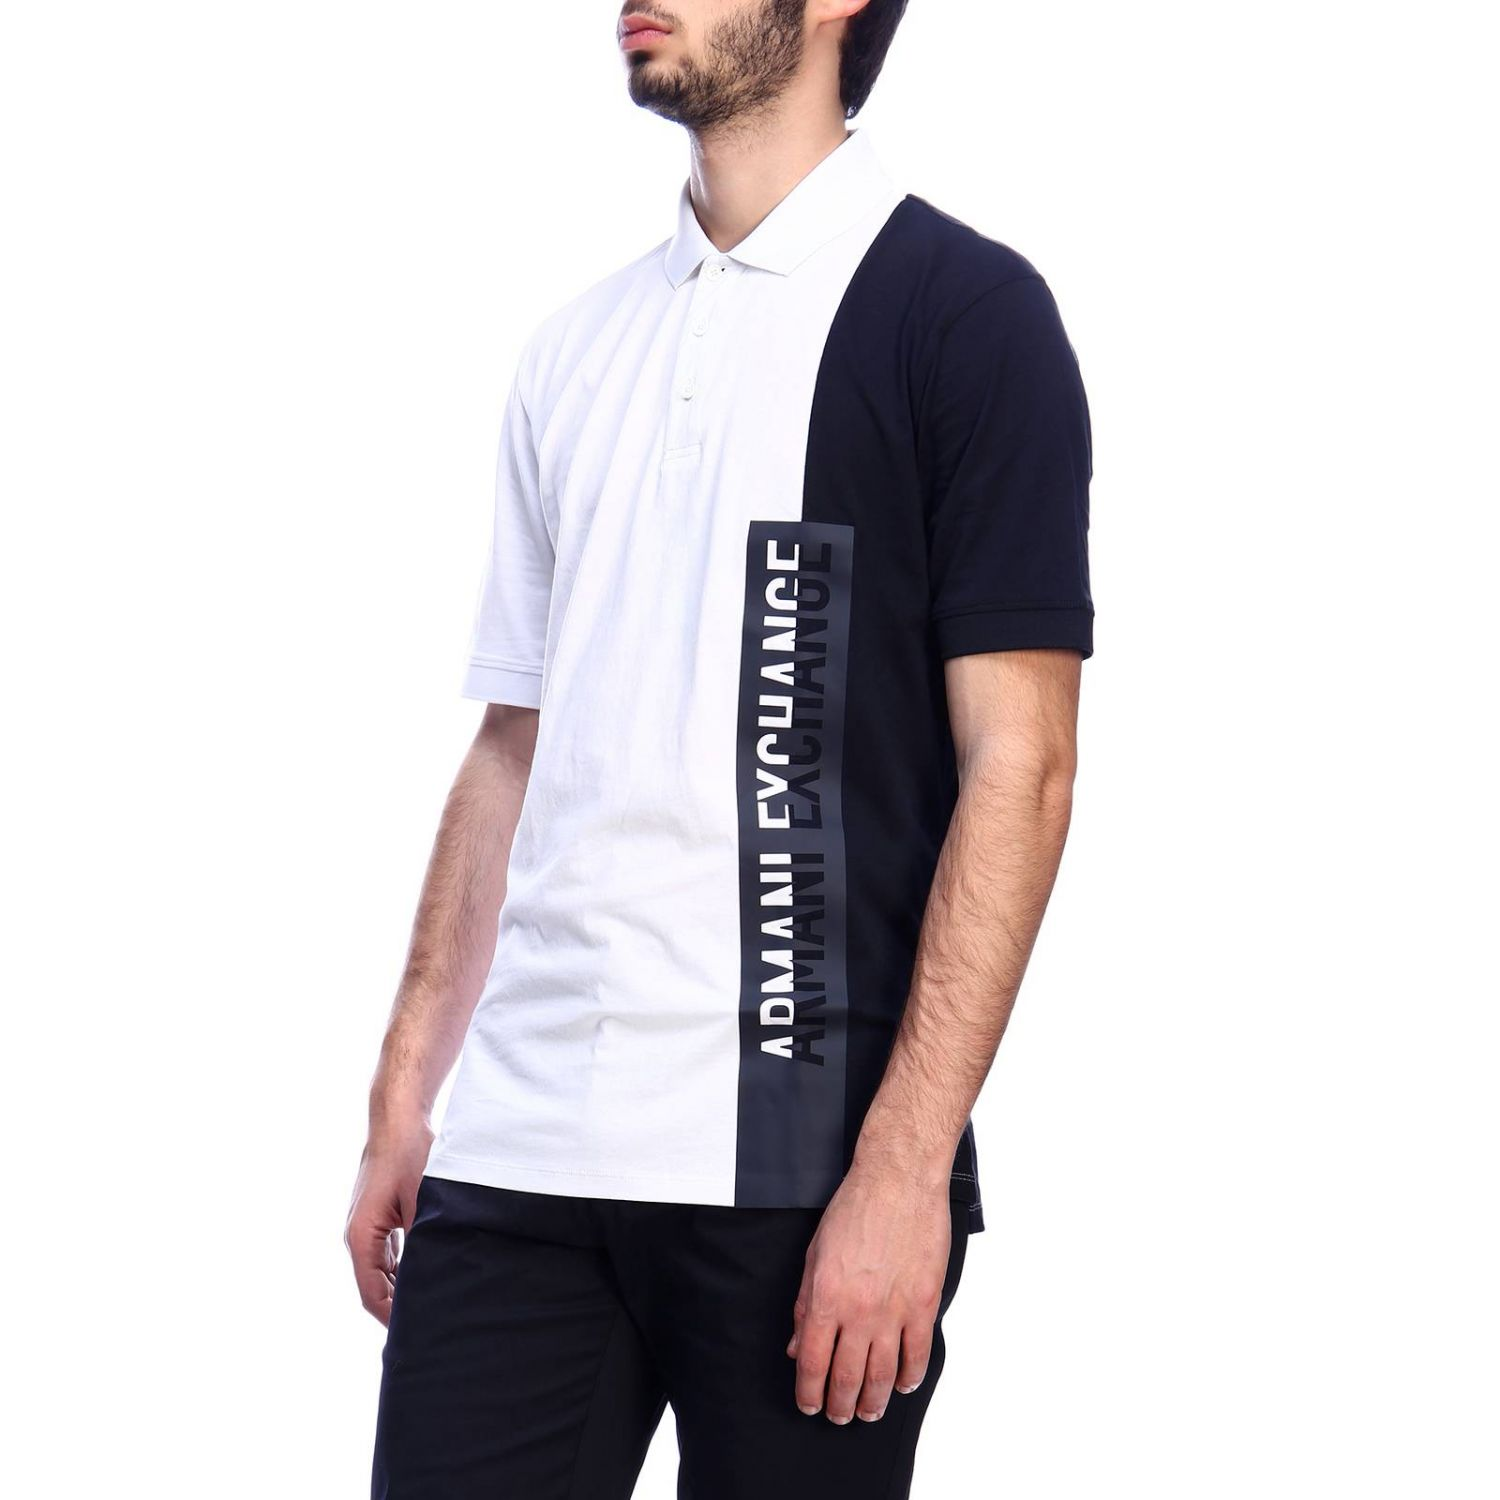 T-shirt men Armani Exchange white 2